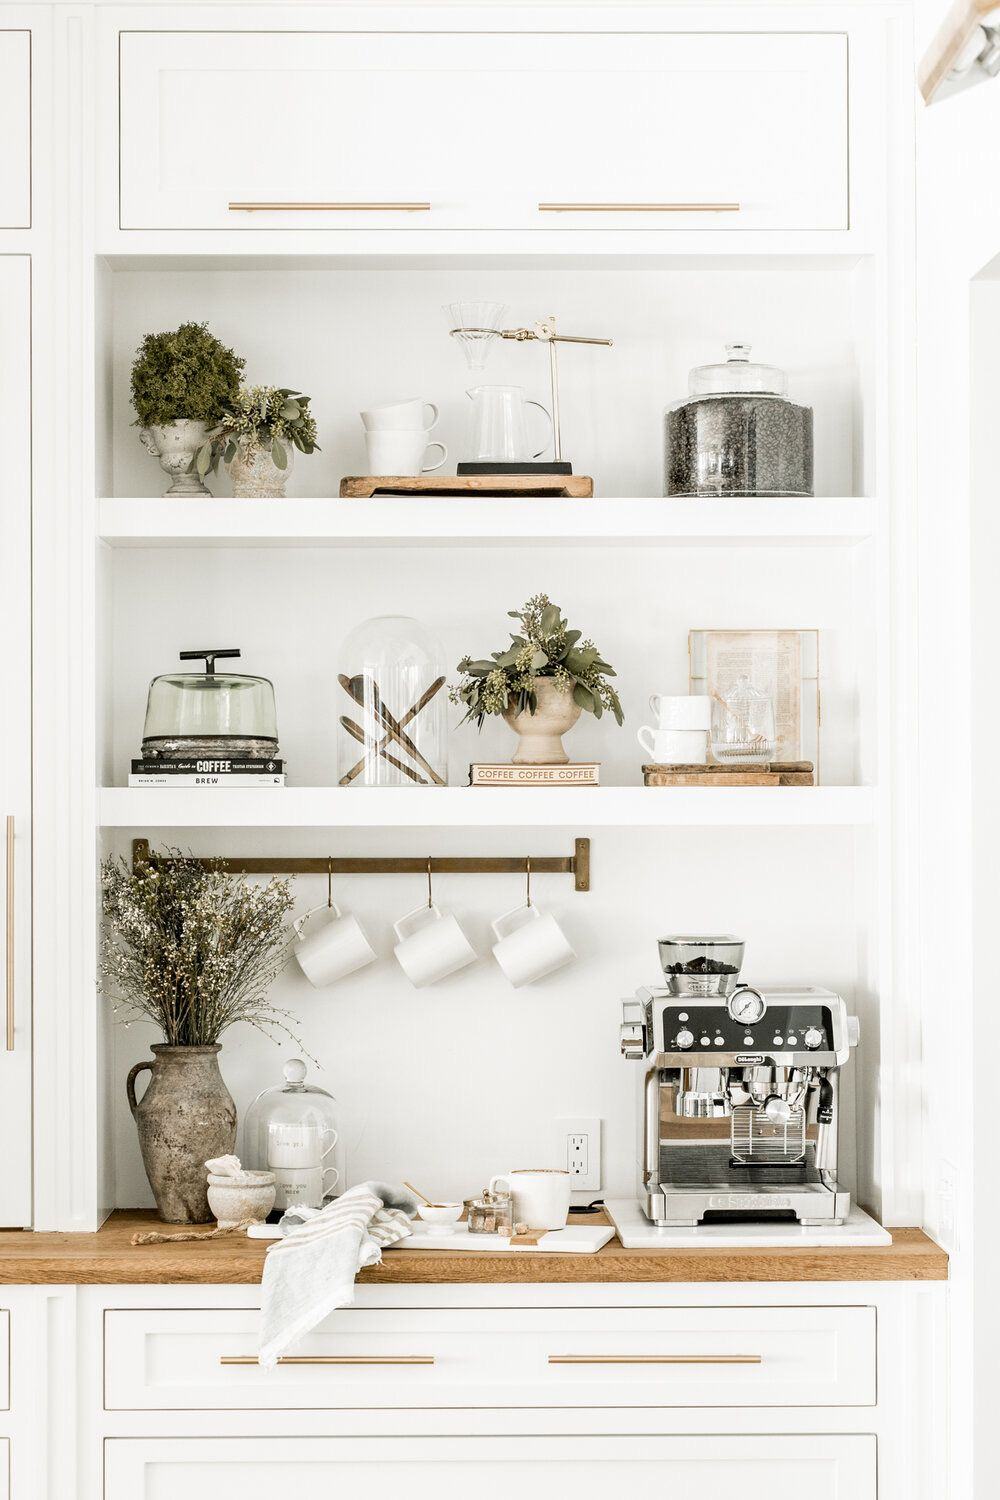 11 Coffee Station Ideas The Best Part Of Waking Up In 2020 Coffee Bar Inspiring Spaces Home